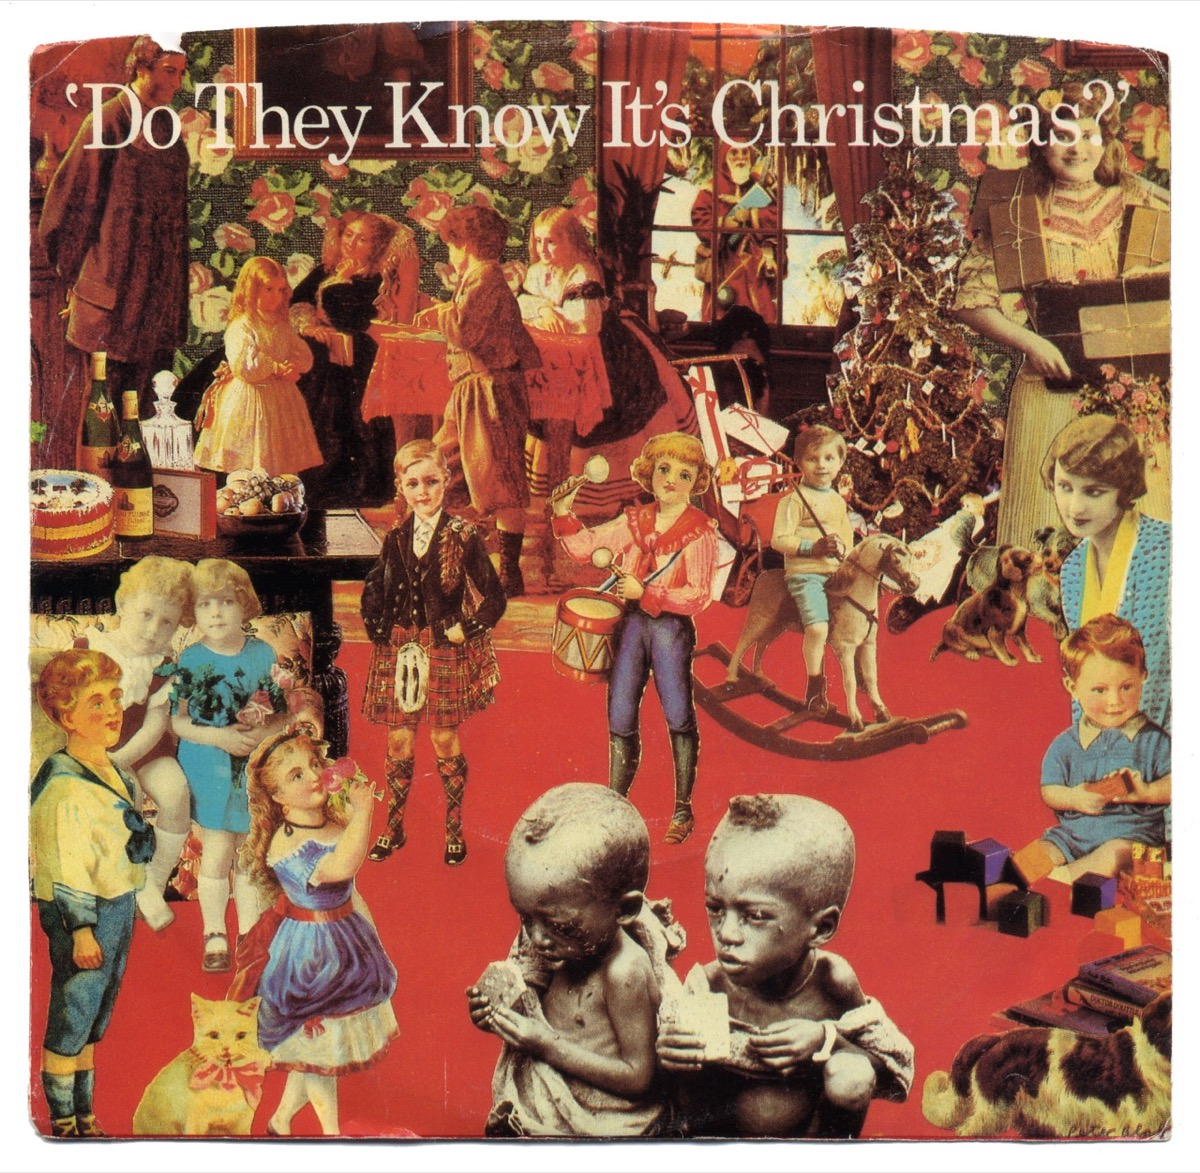 do they know it's christmas cover art, 1980s nostalgia